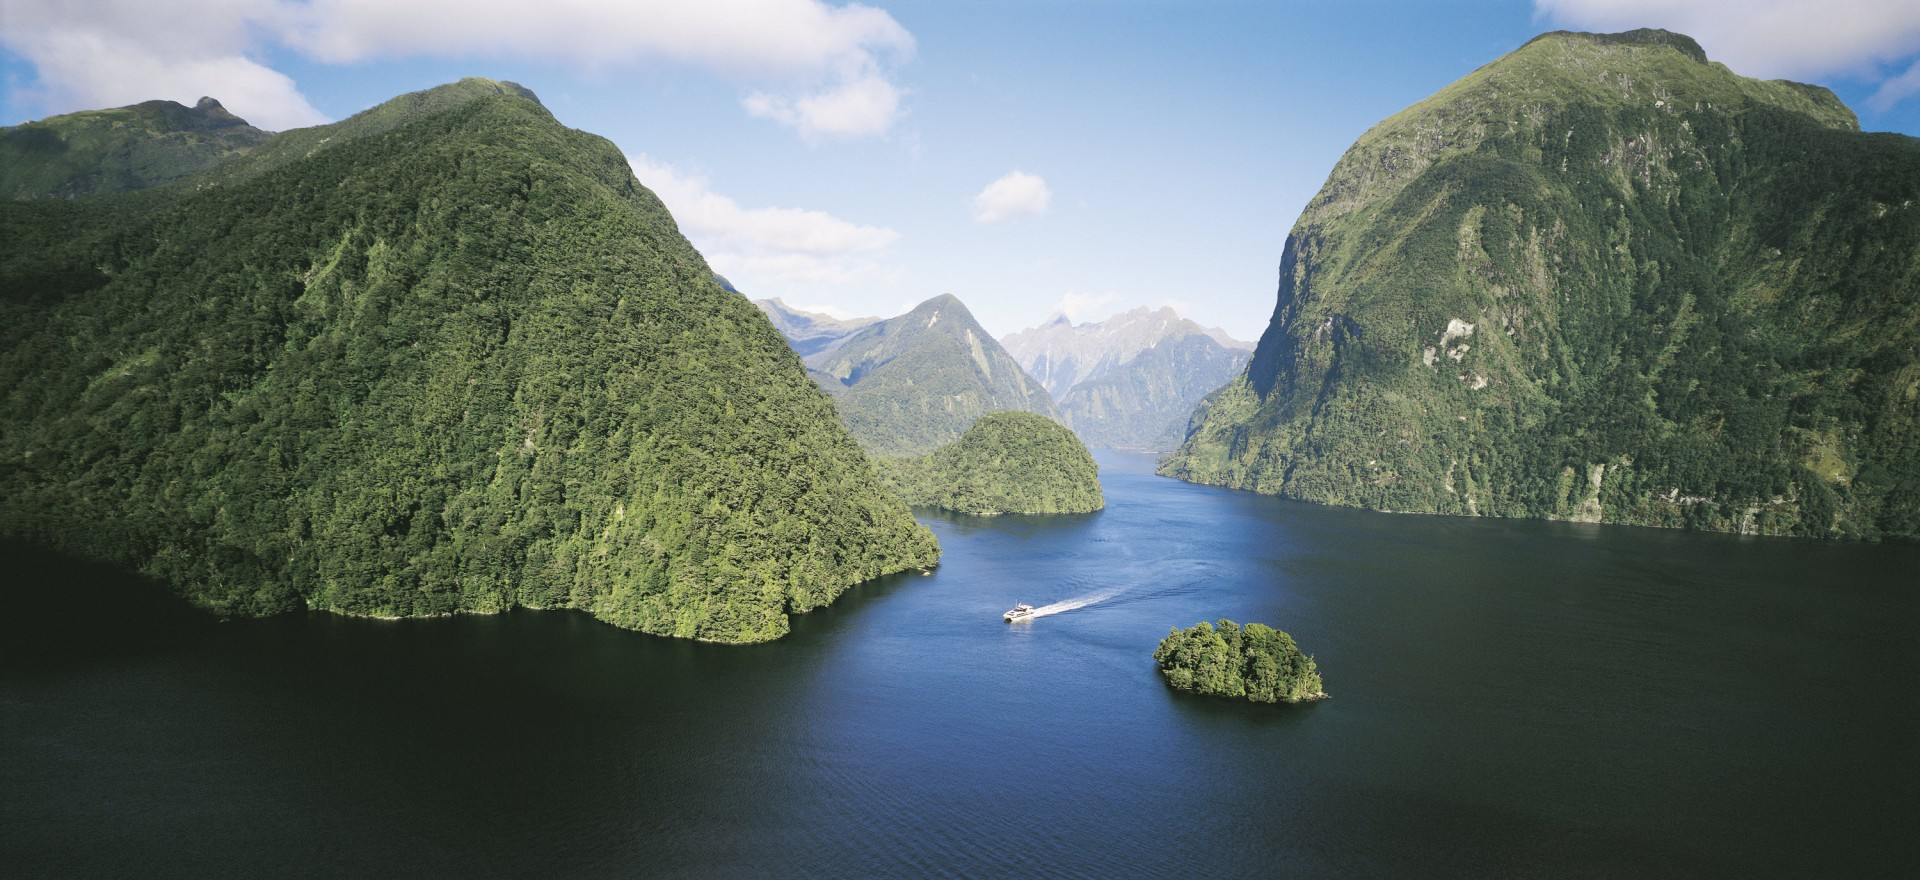 Te Anau, Milford, Doubtful Sound, Mavora Lakes and Walter Peak Station